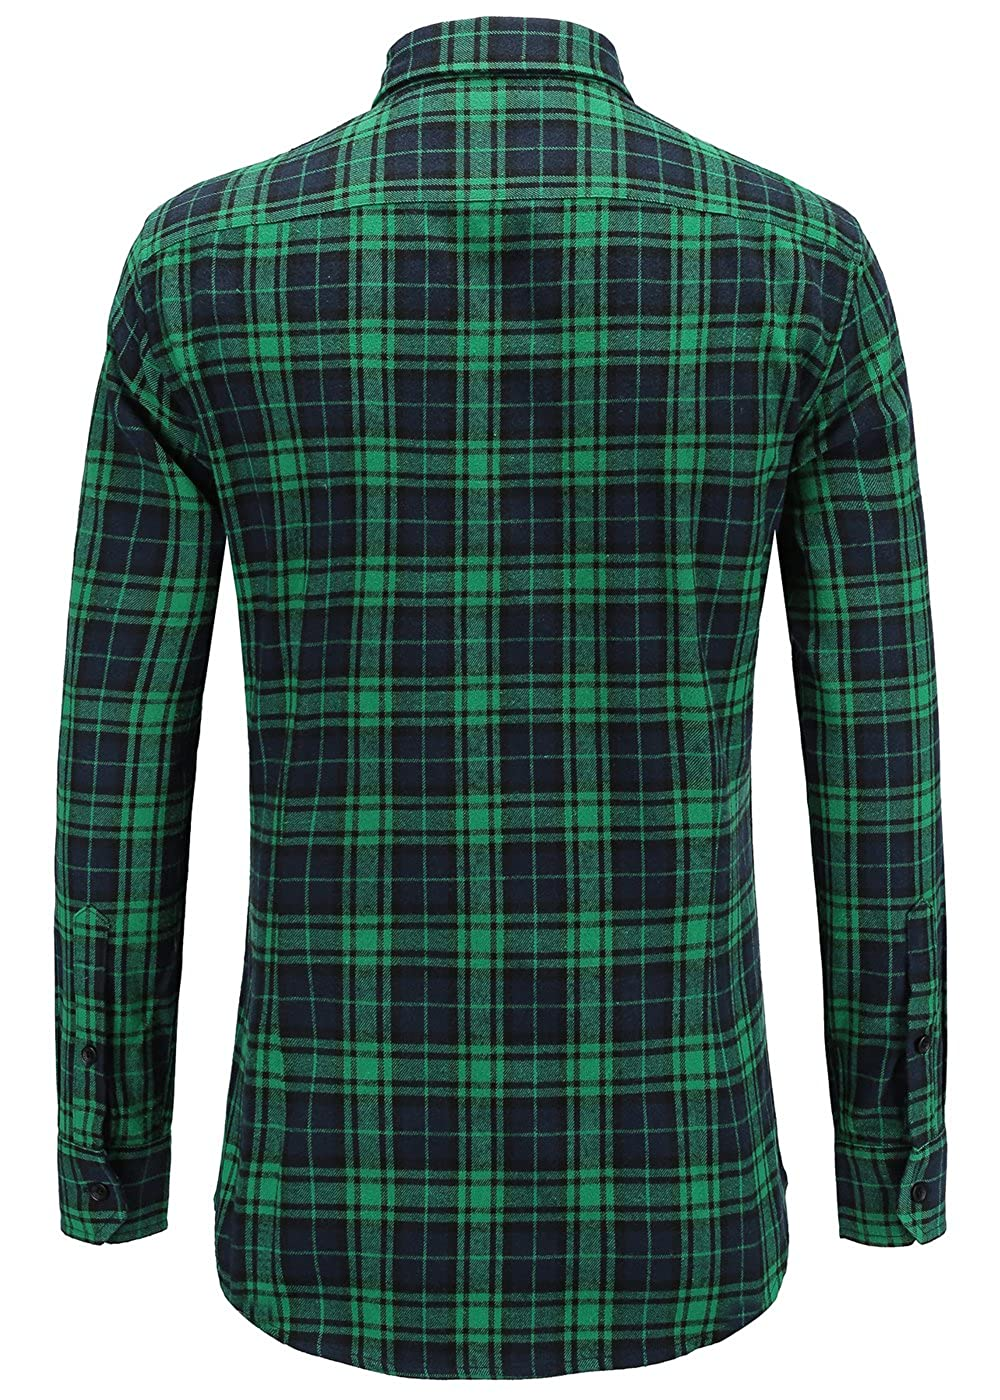 Emiqude Mens 100/% Cotton Slim Fit Long Sleeve Button Down Flannel Cross Plaid Dress Shirt